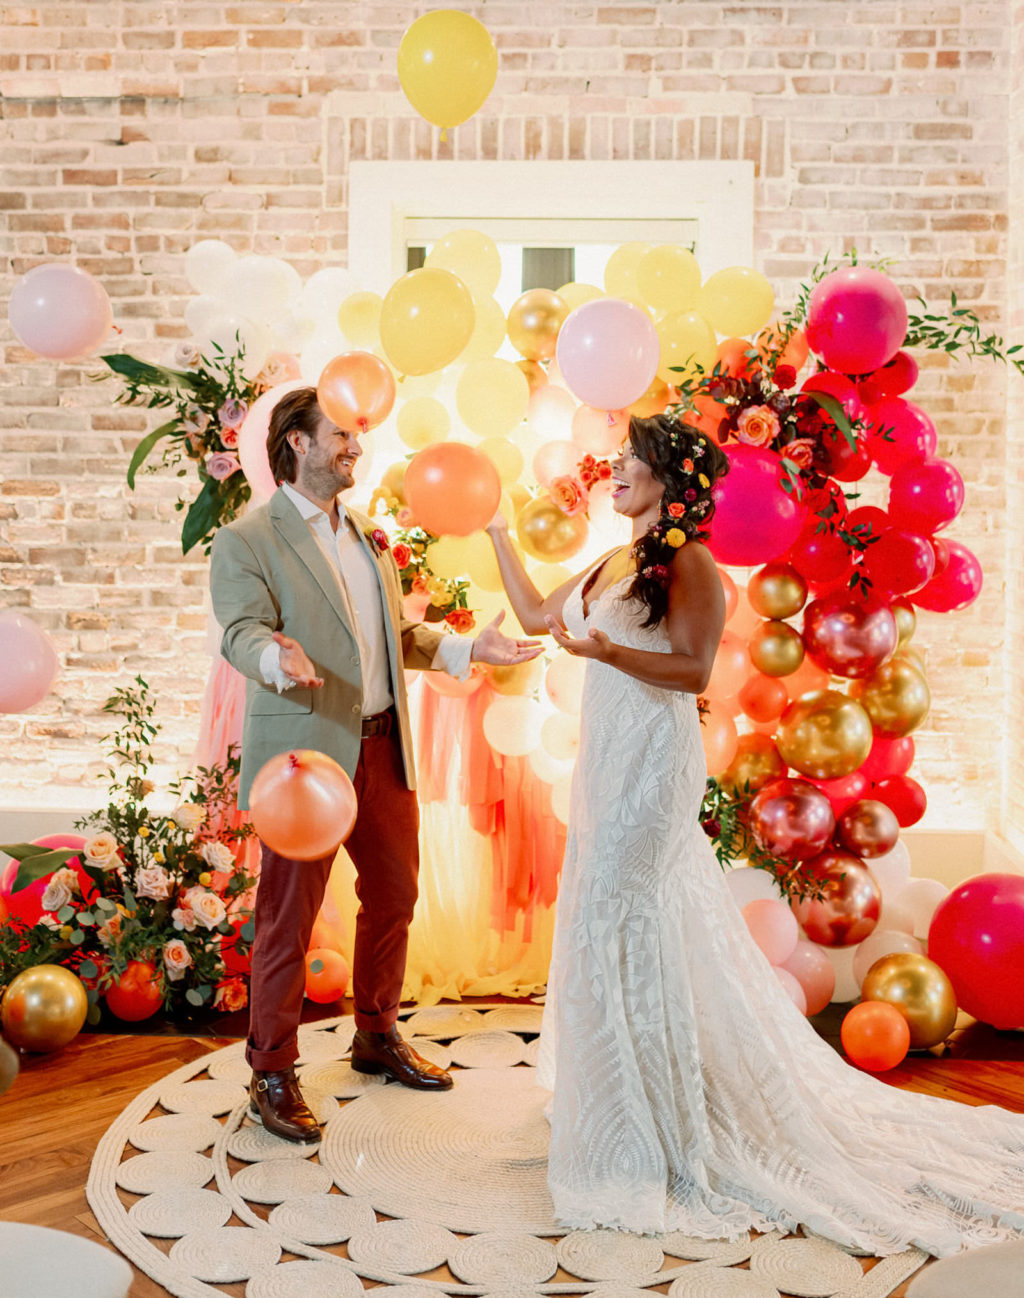 Whimsical and Colorful Bride and Groom with Orange, Pink, Yellow and Gold Balloon and Fringe Ceremony Backdrop   Tampa Bay Wedding Photographer Dewitt for Love   St. Pete Modern Industrial Wedding Venue Red Mesa Events